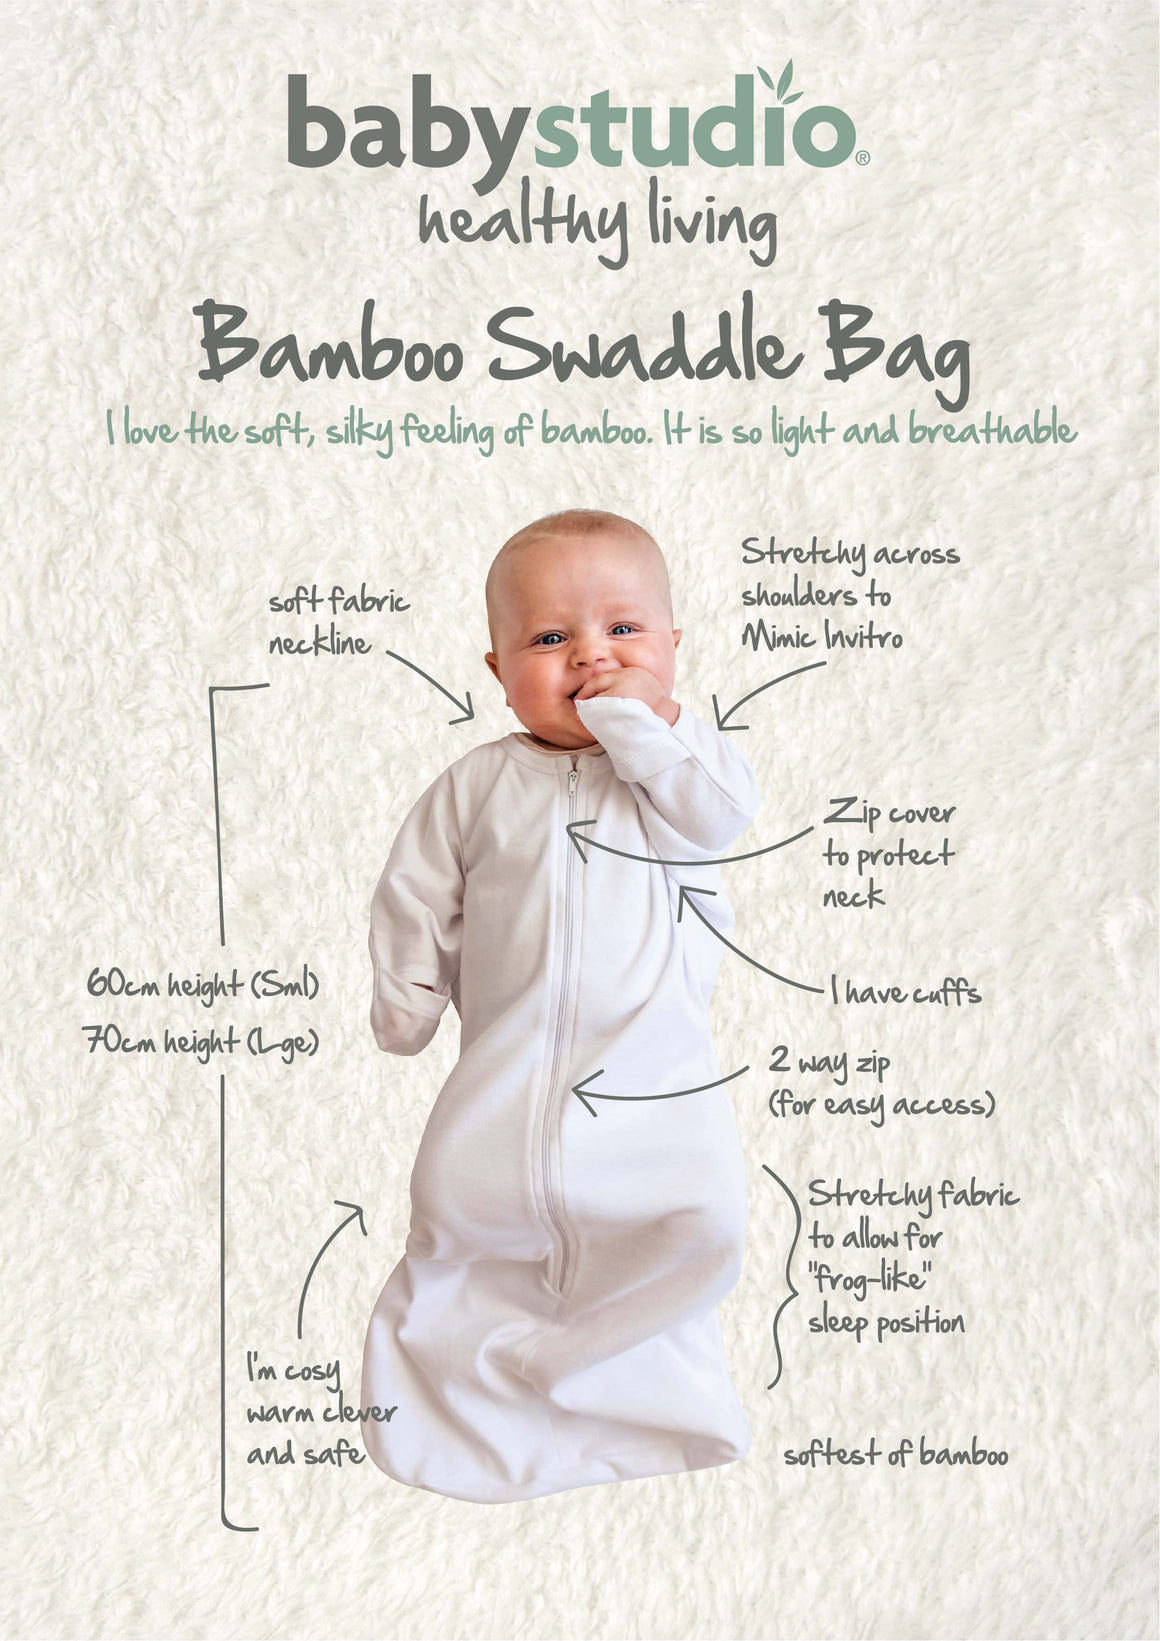 3-9M/00 ALL IN ONE SWADDLE BAG BAMBOO 0.5 TOG - VARIOUS DESIGNS